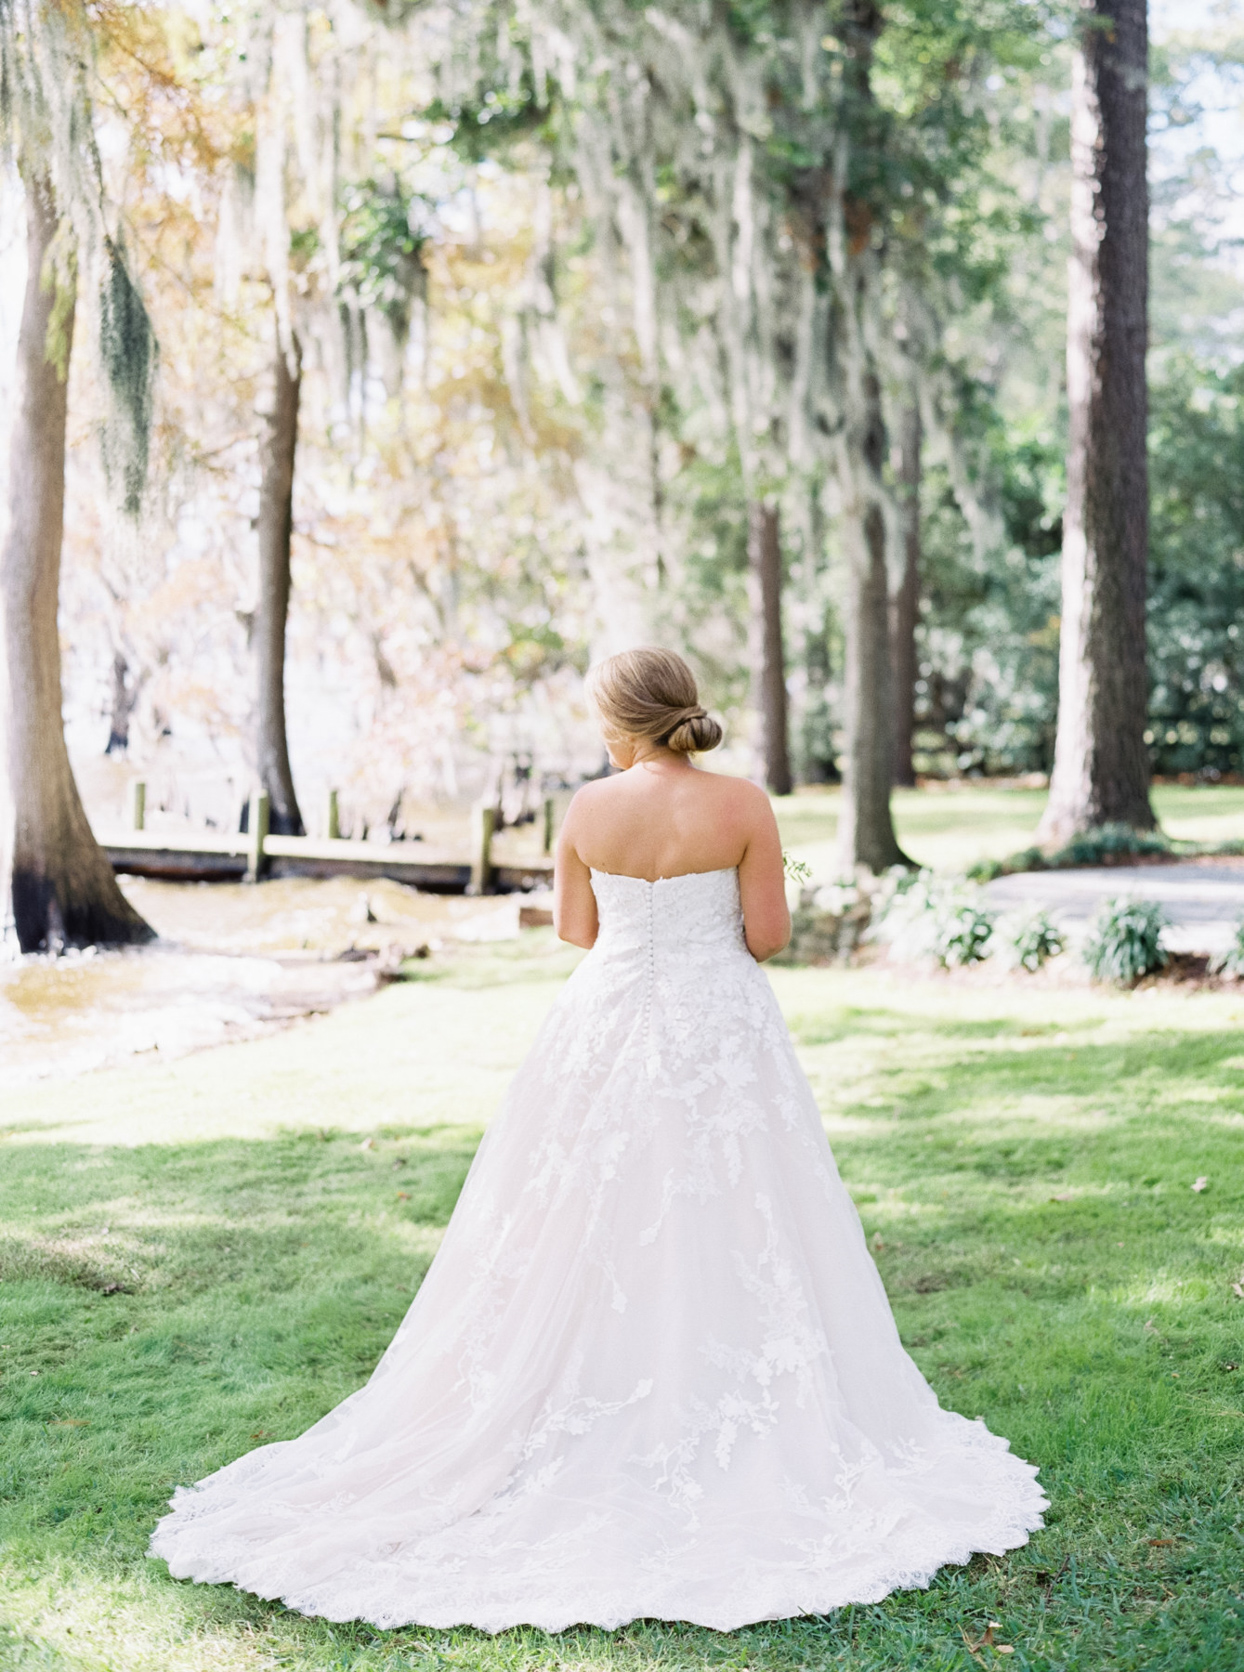 bride standing in white dress with back toward camera